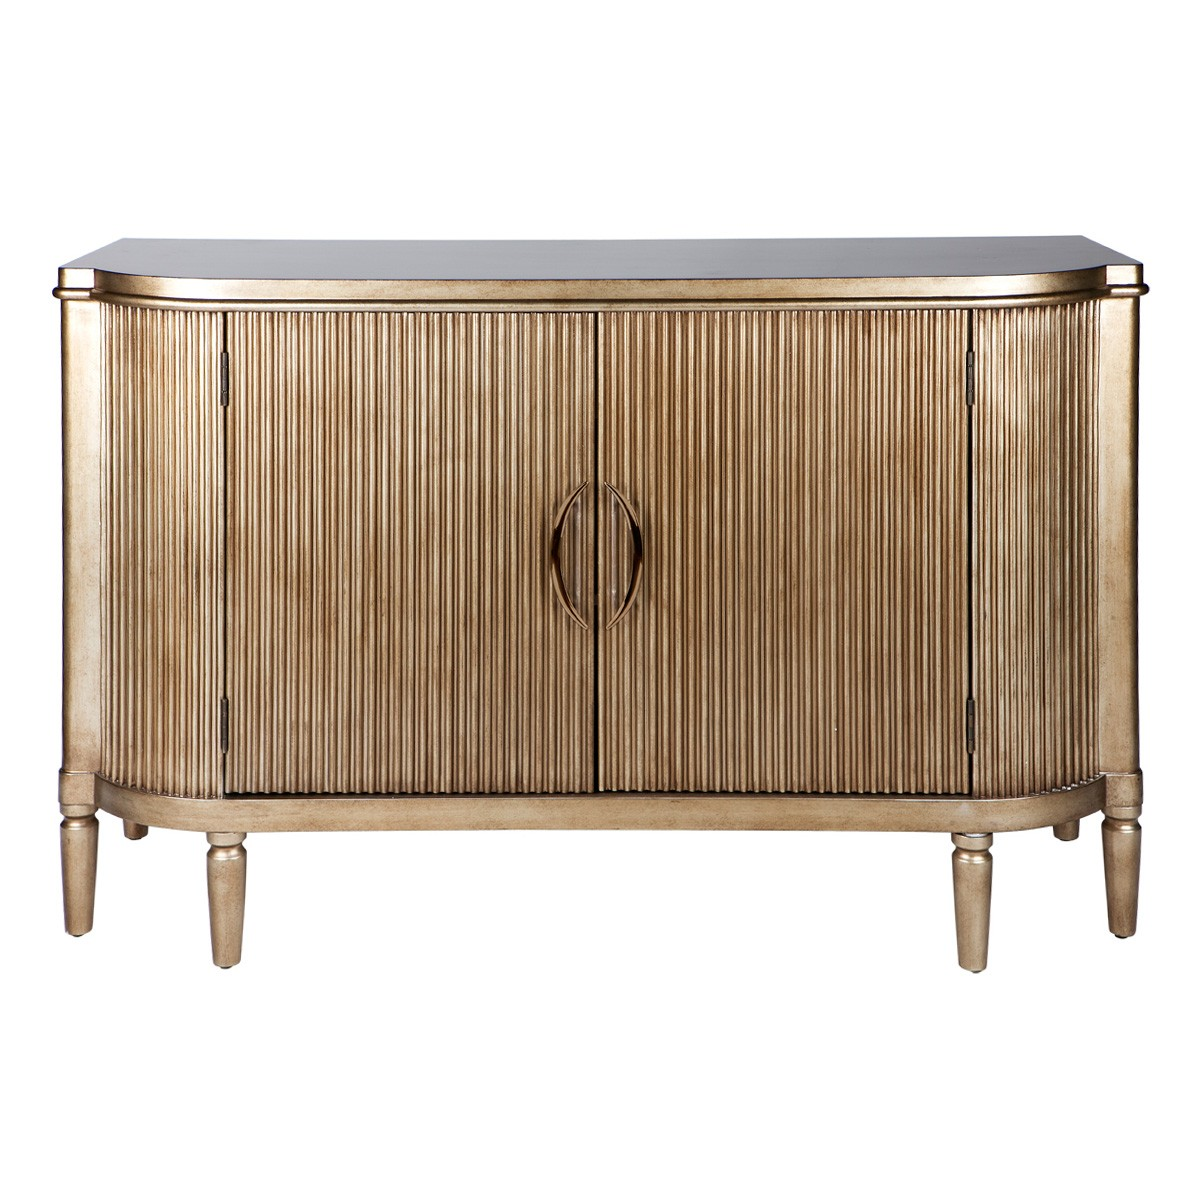 Arielle 2 Door Buffet Table, 140cm